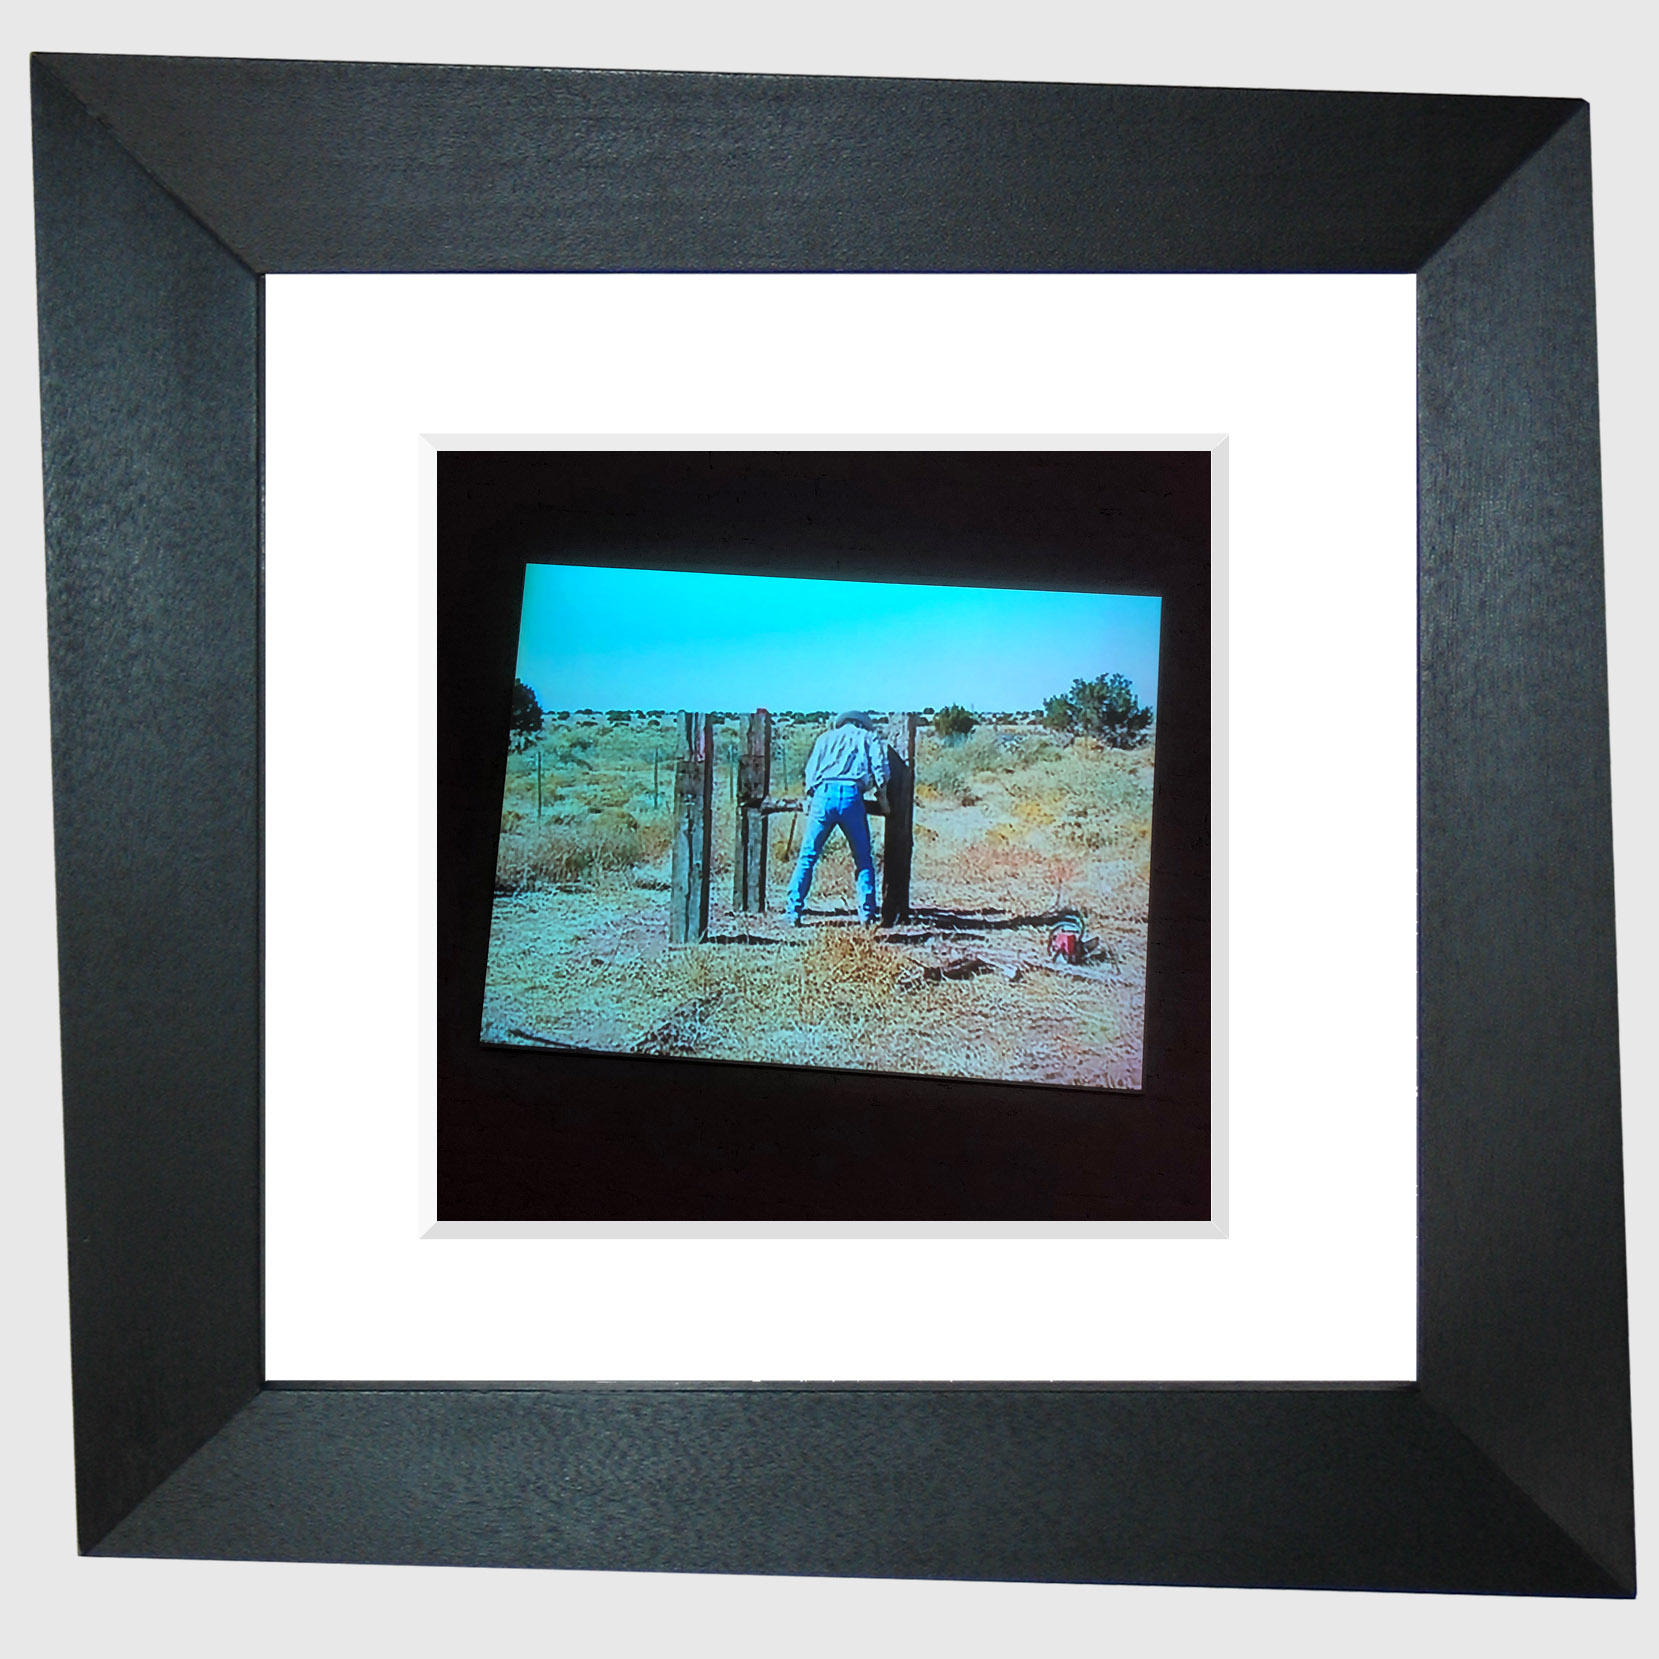 from the series Fixing Things With My Camera (Bruce Nauman)